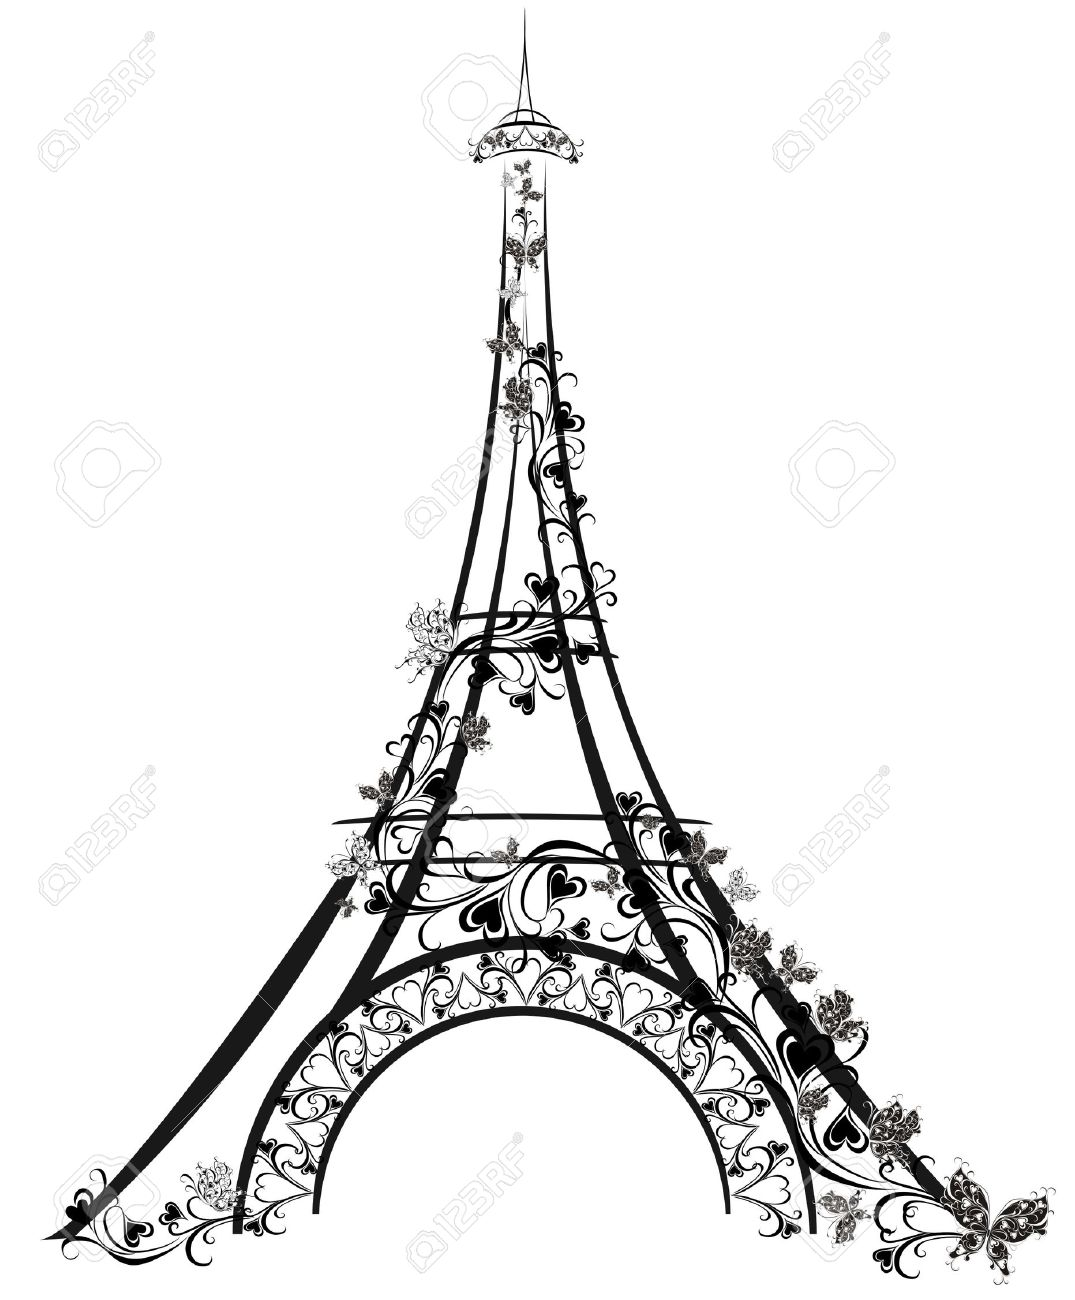 1075x1300 Eiffel Tower, Paris, France Royalty Free Cliparts, Vectors, And